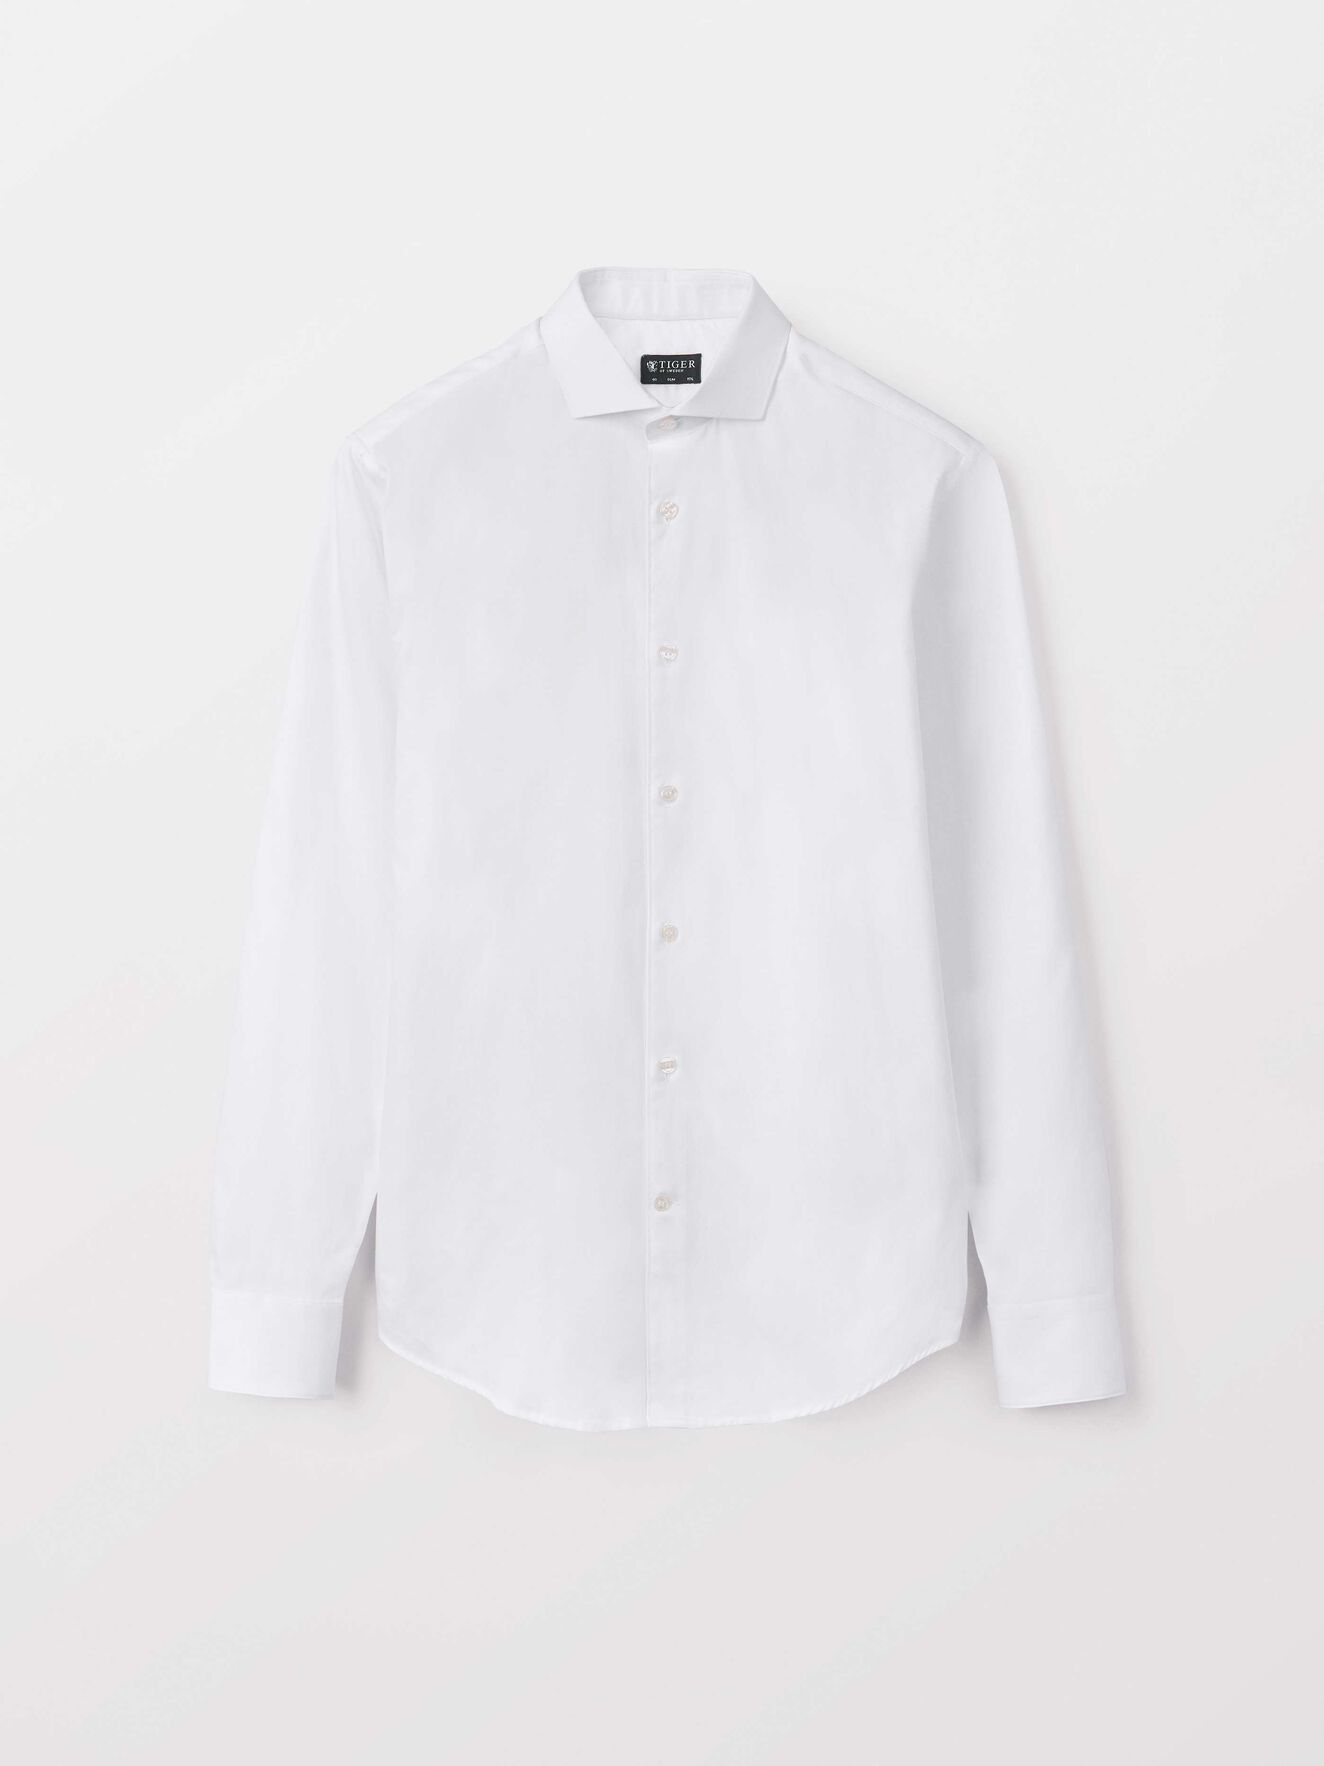 Farrell 5 Shirt in Pure white from Tiger of Sweden